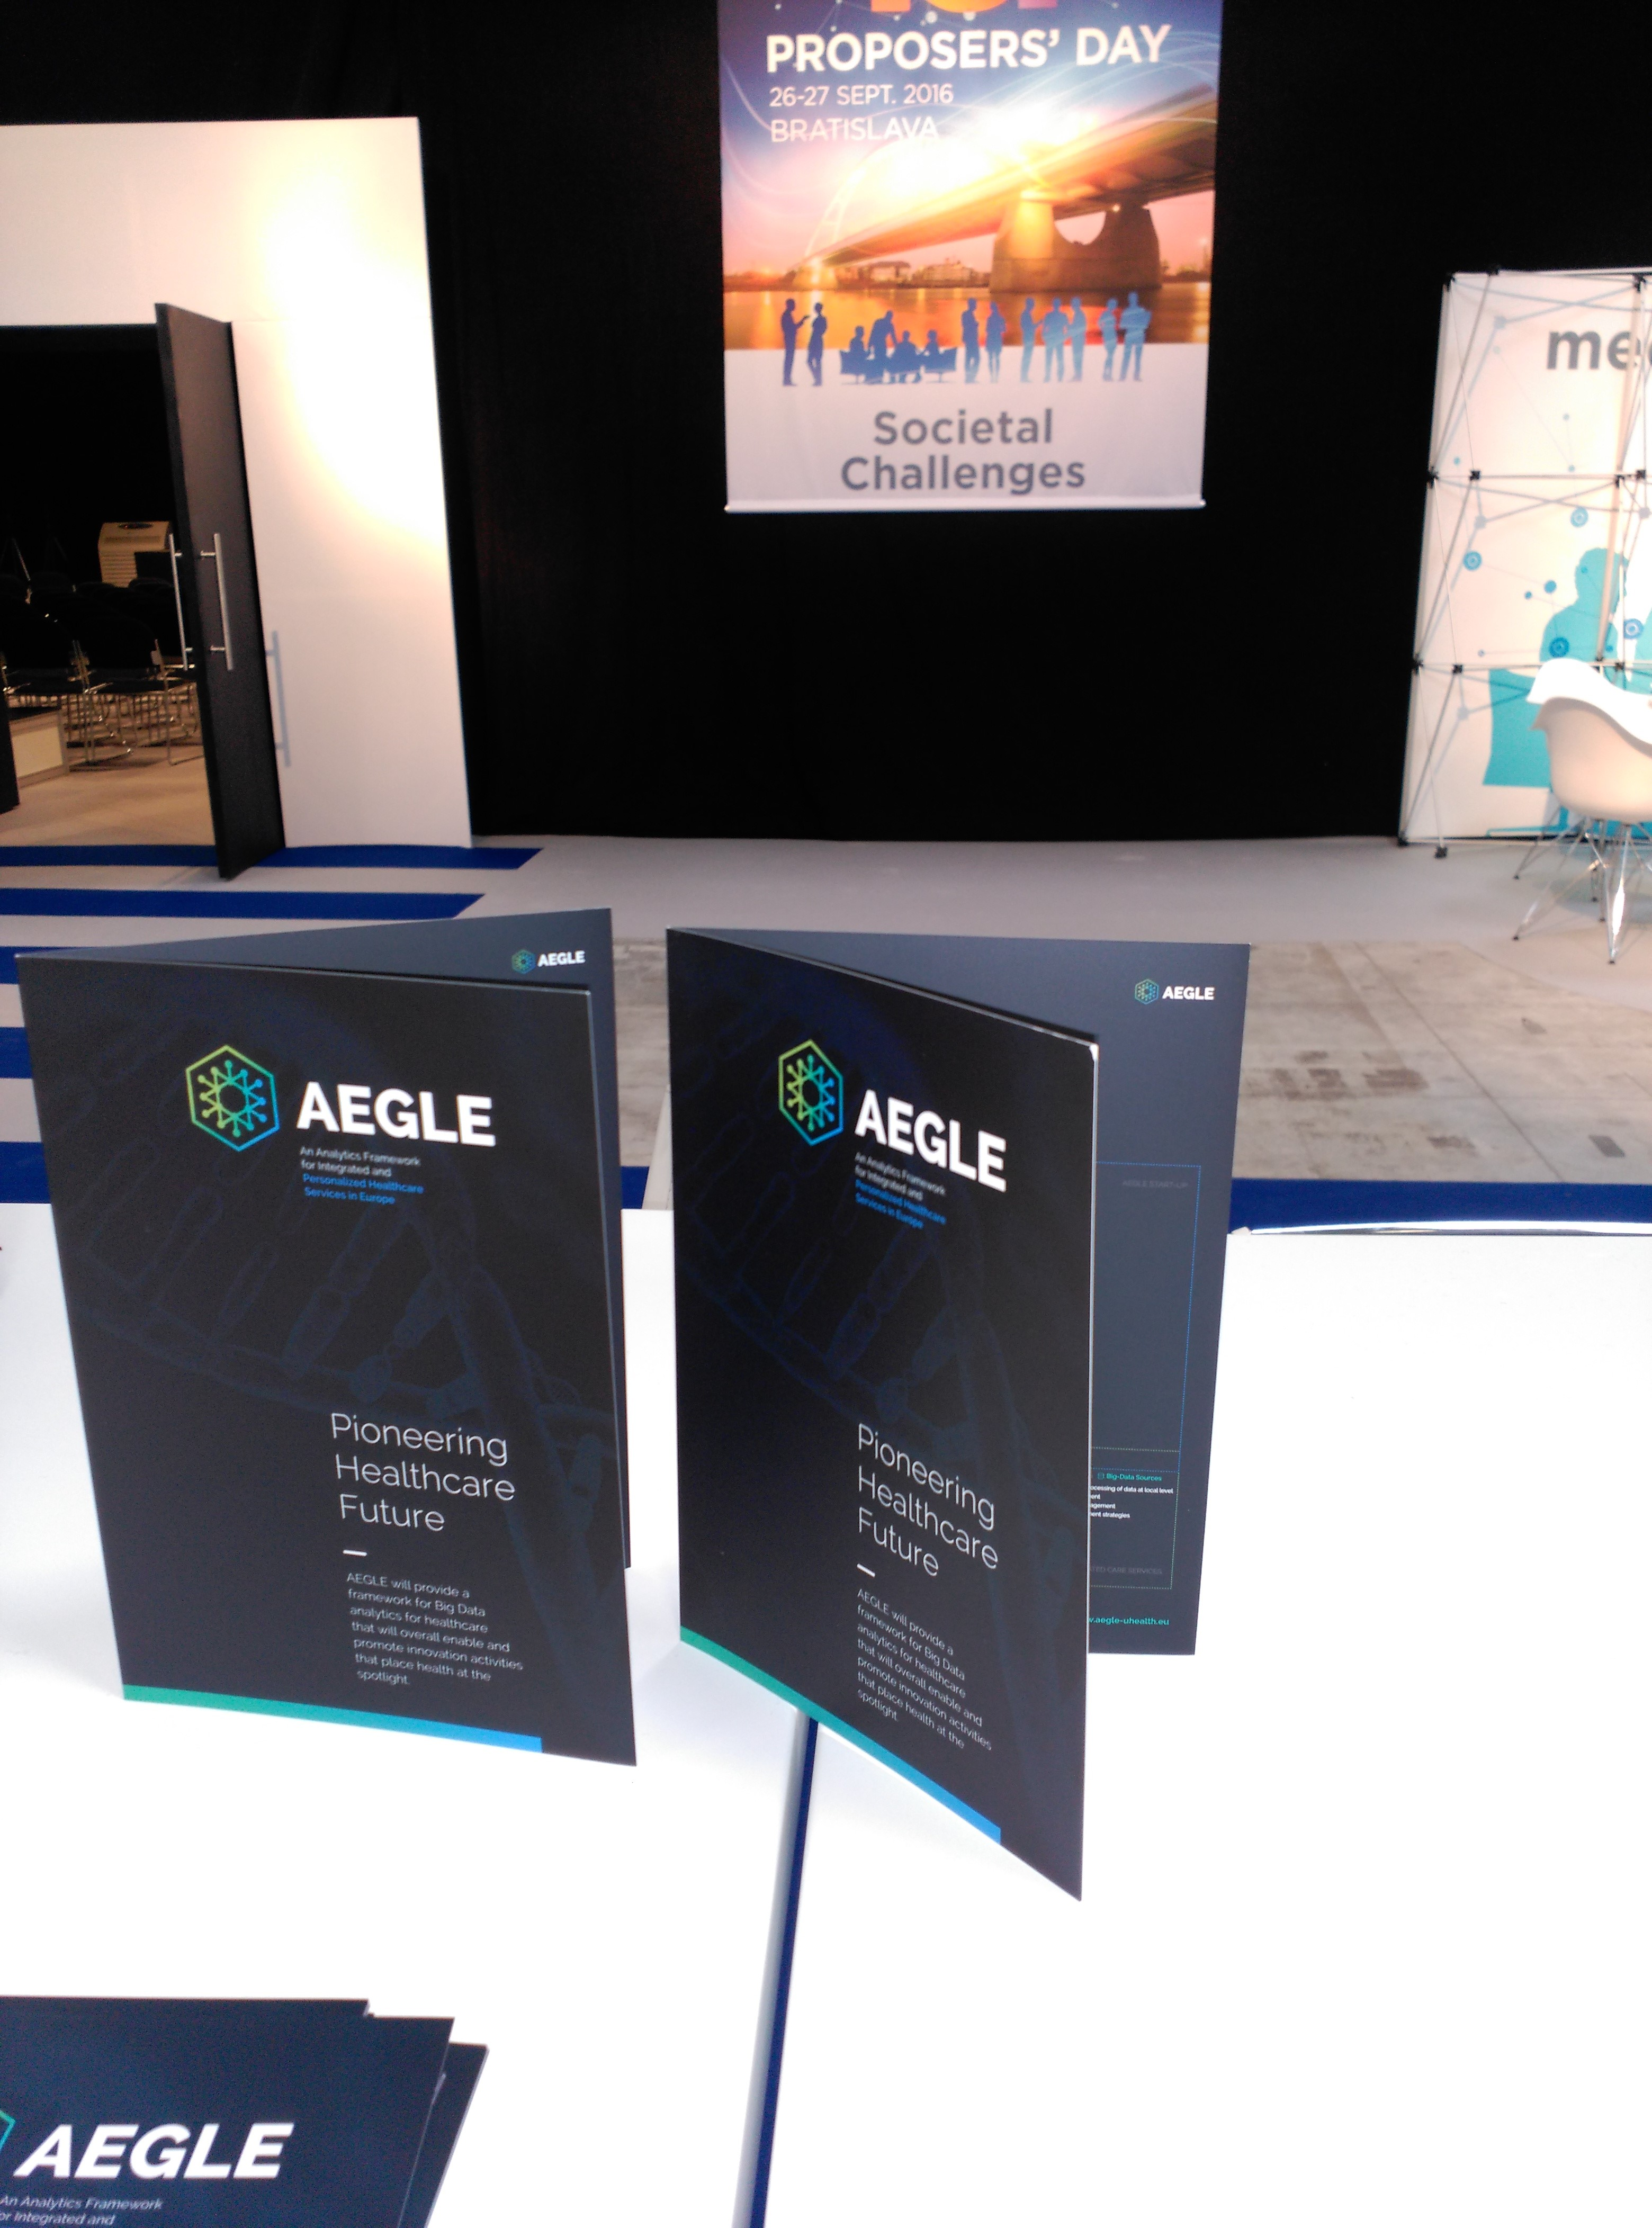 AEGLE at ICT Proposers' Day - Bratislava